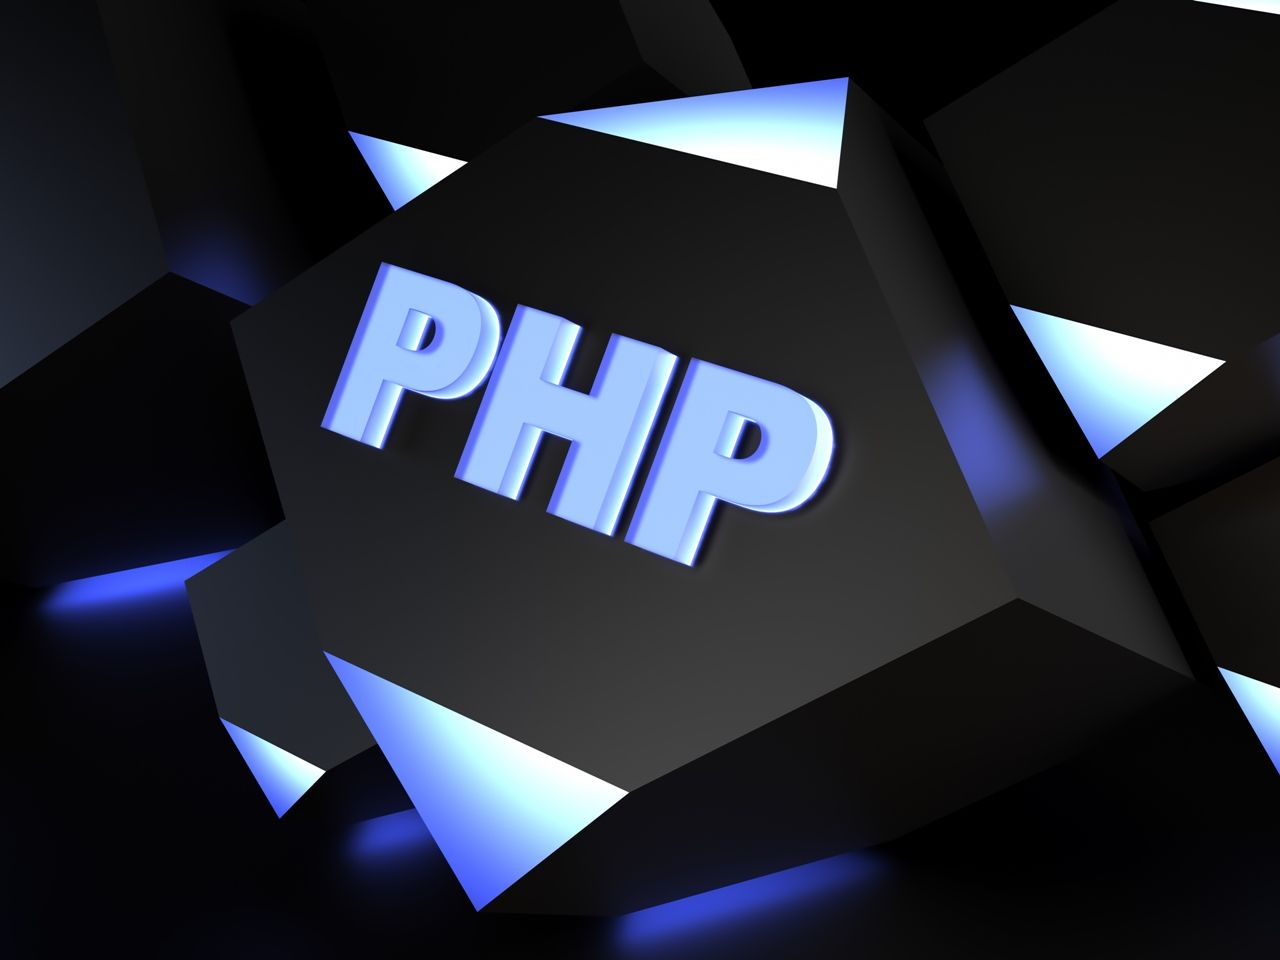 Several benefits through PHP in developing a website